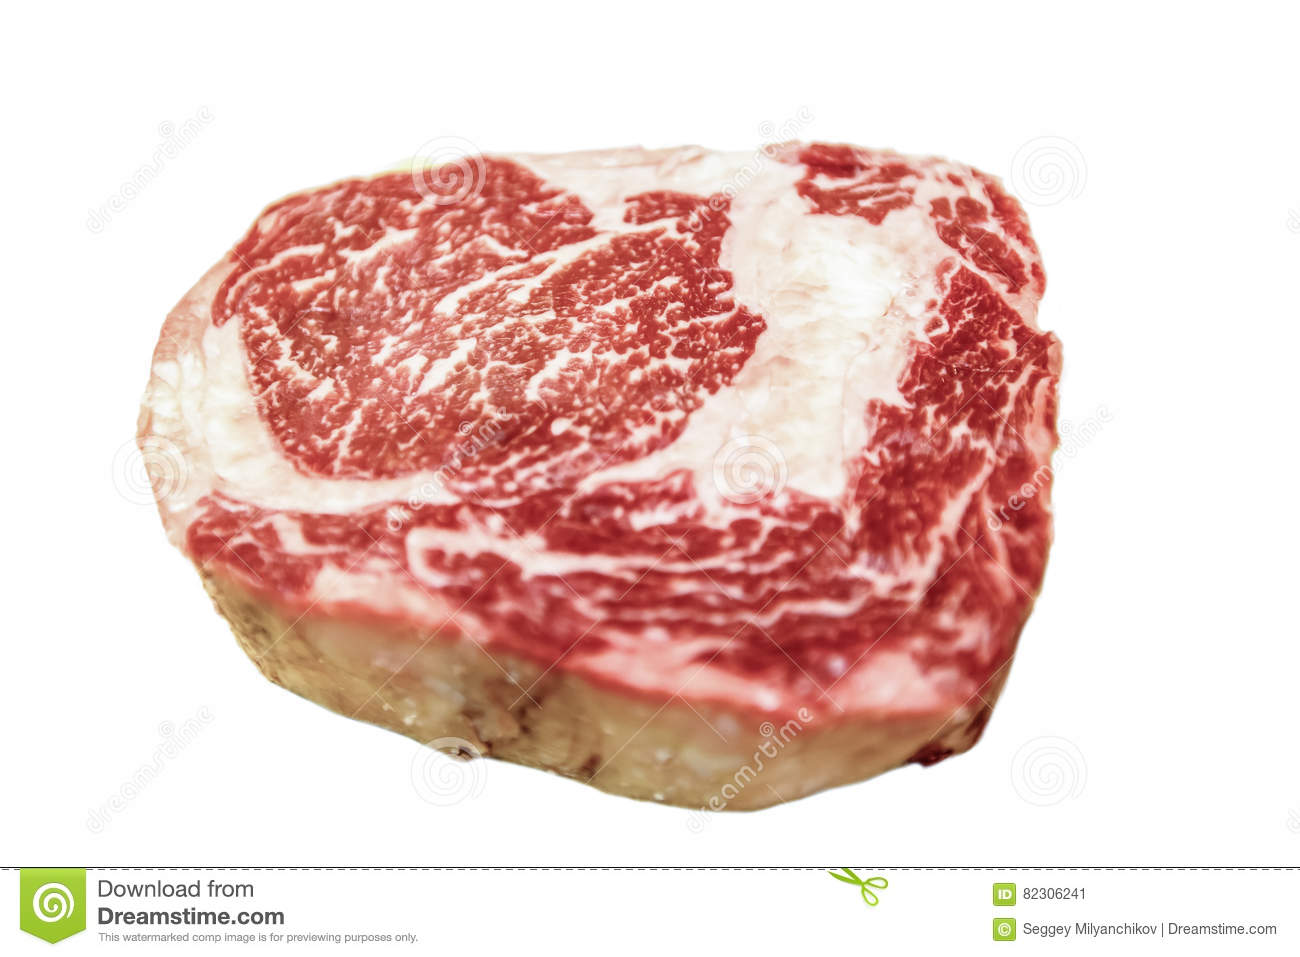 Raw ribeye beef lies on a white background. Marbled meat.